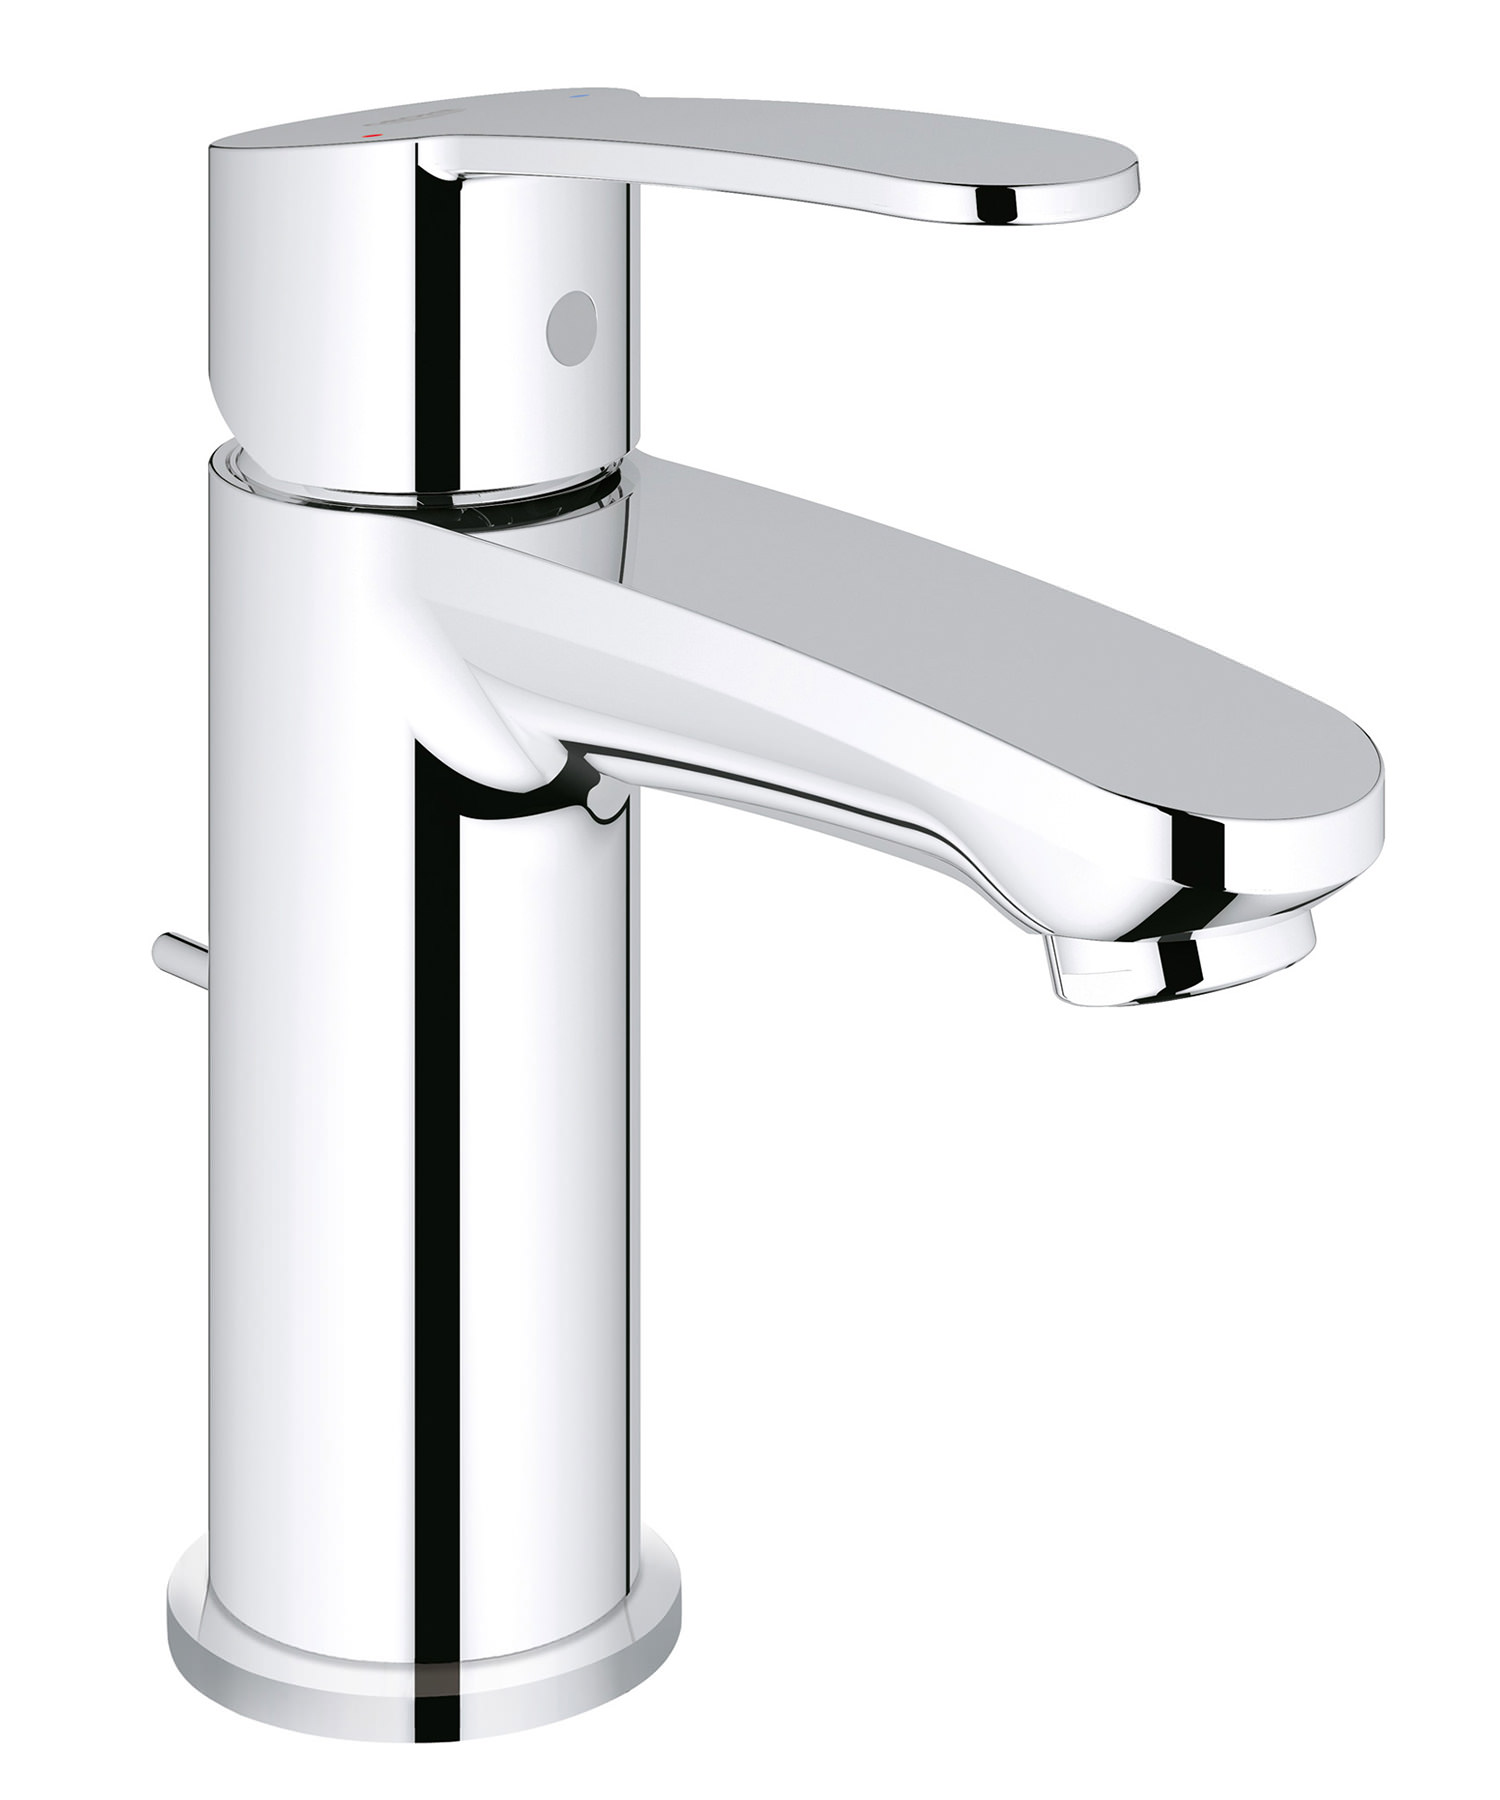 grohe eurostyle cosmo half inch basin mixer tap 23037002. Black Bedroom Furniture Sets. Home Design Ideas